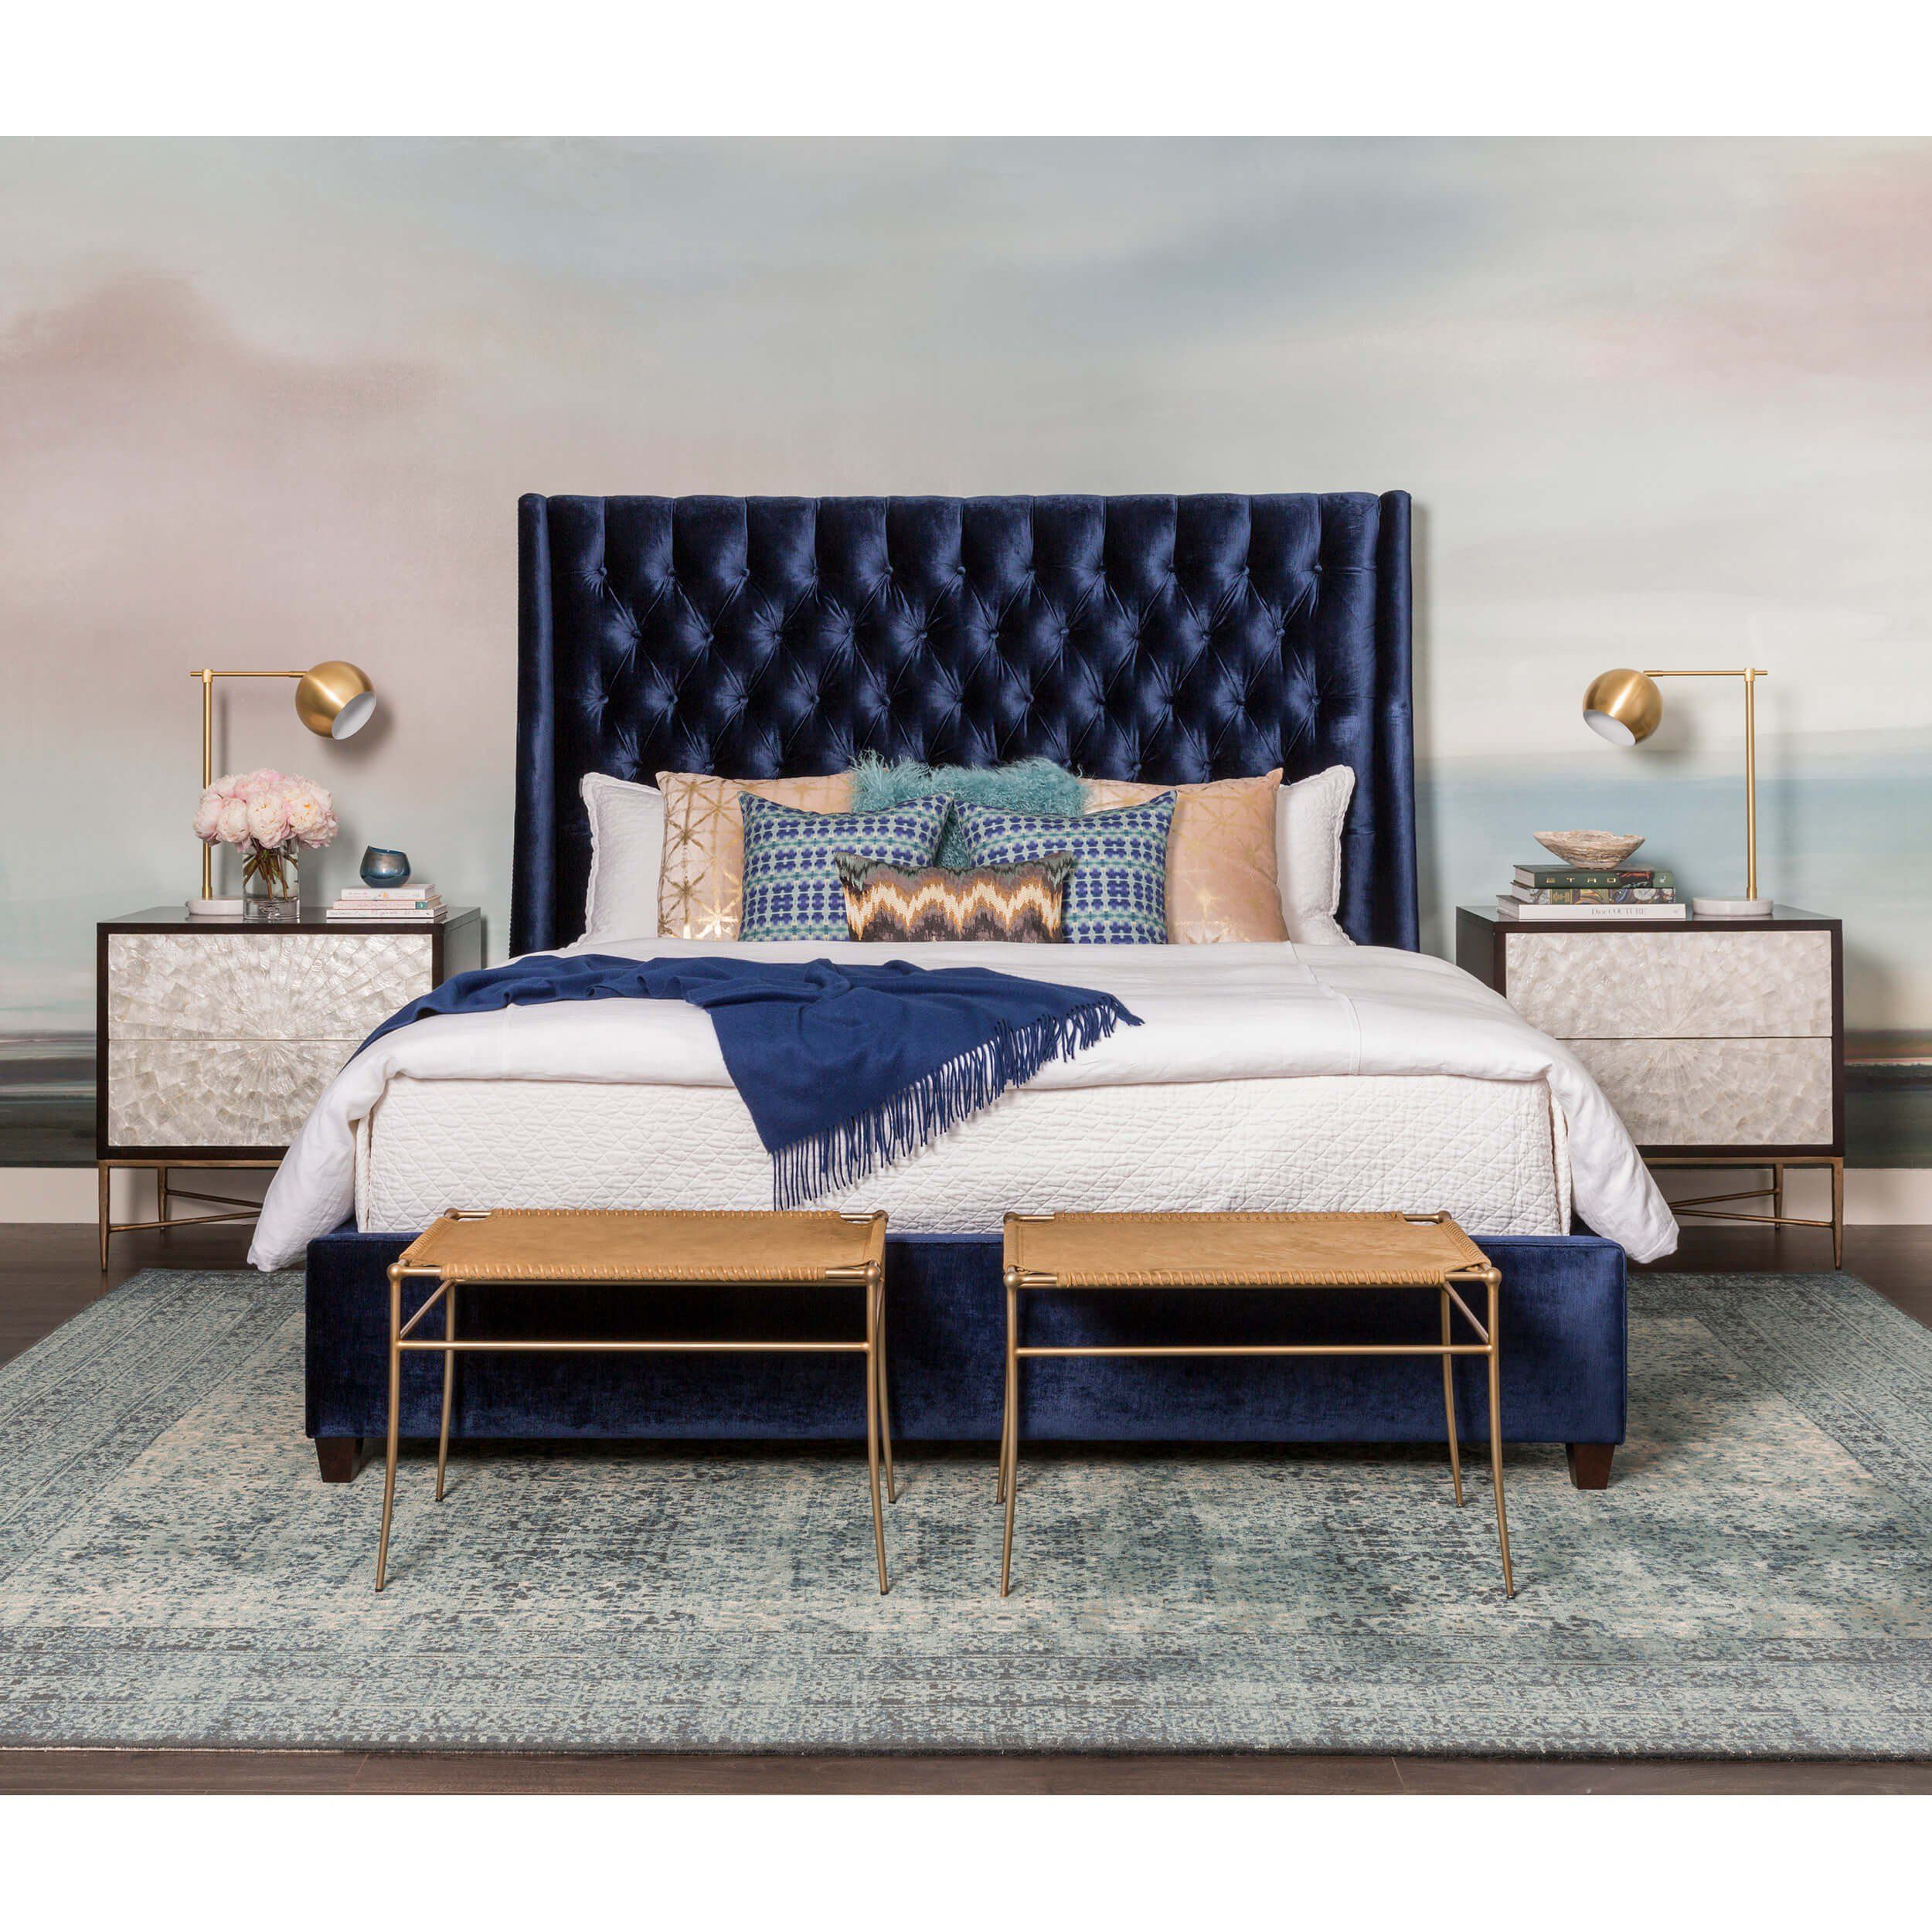 Discount Bedroom Furniture Stores: Bedroom Decor, Room Ideas